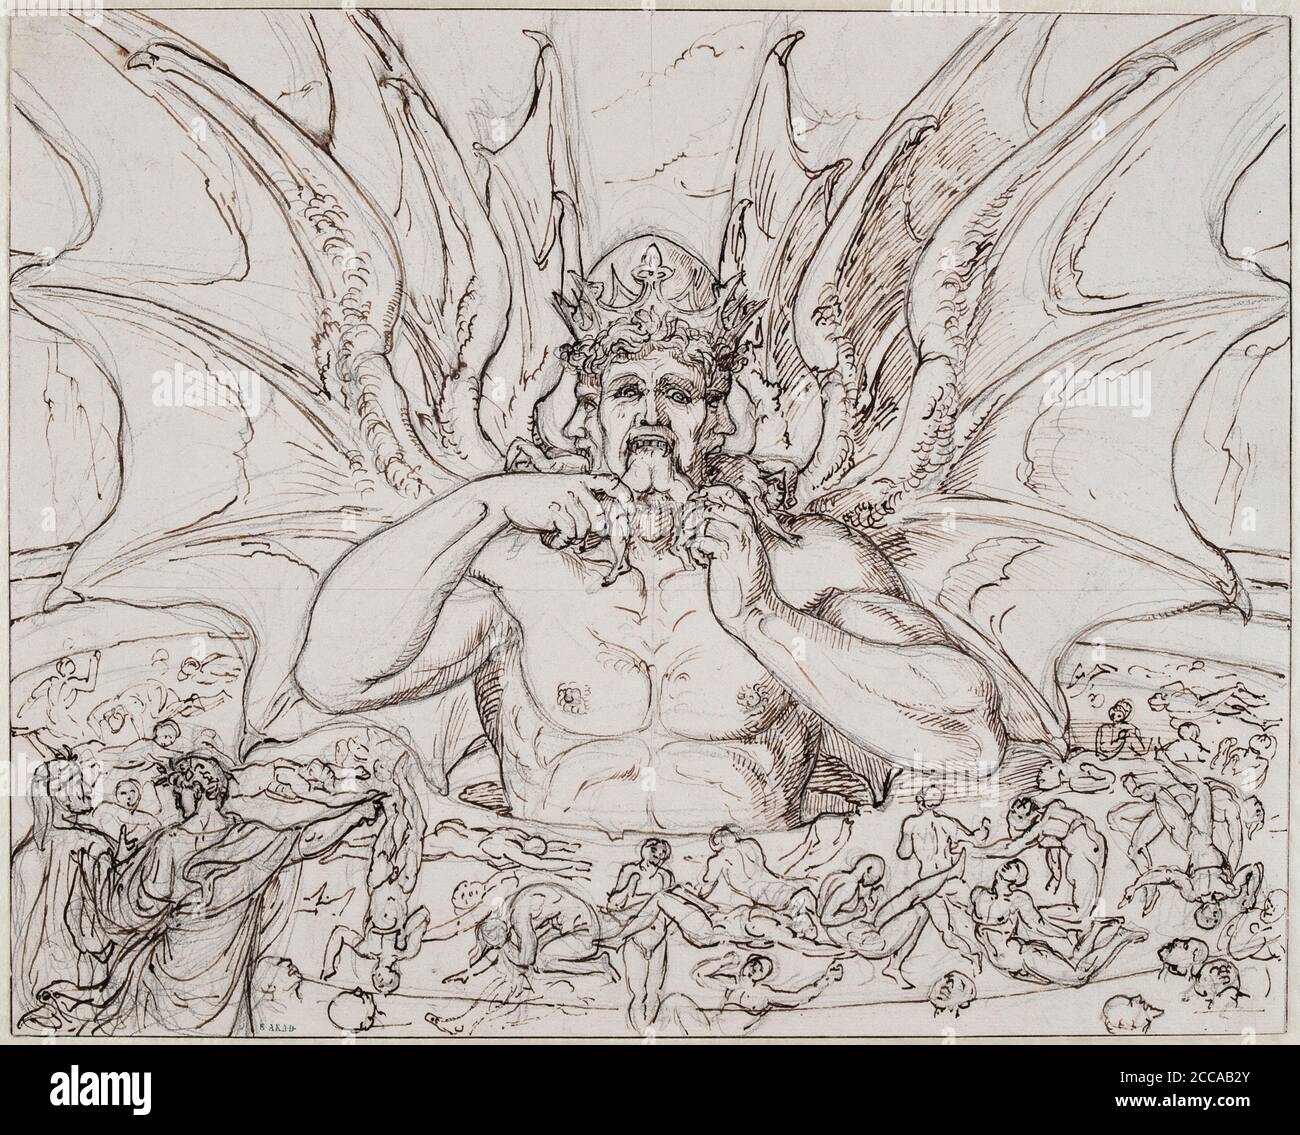 Dante Divine Comedy Satan High Resolution Stock Photography And Images Alamy